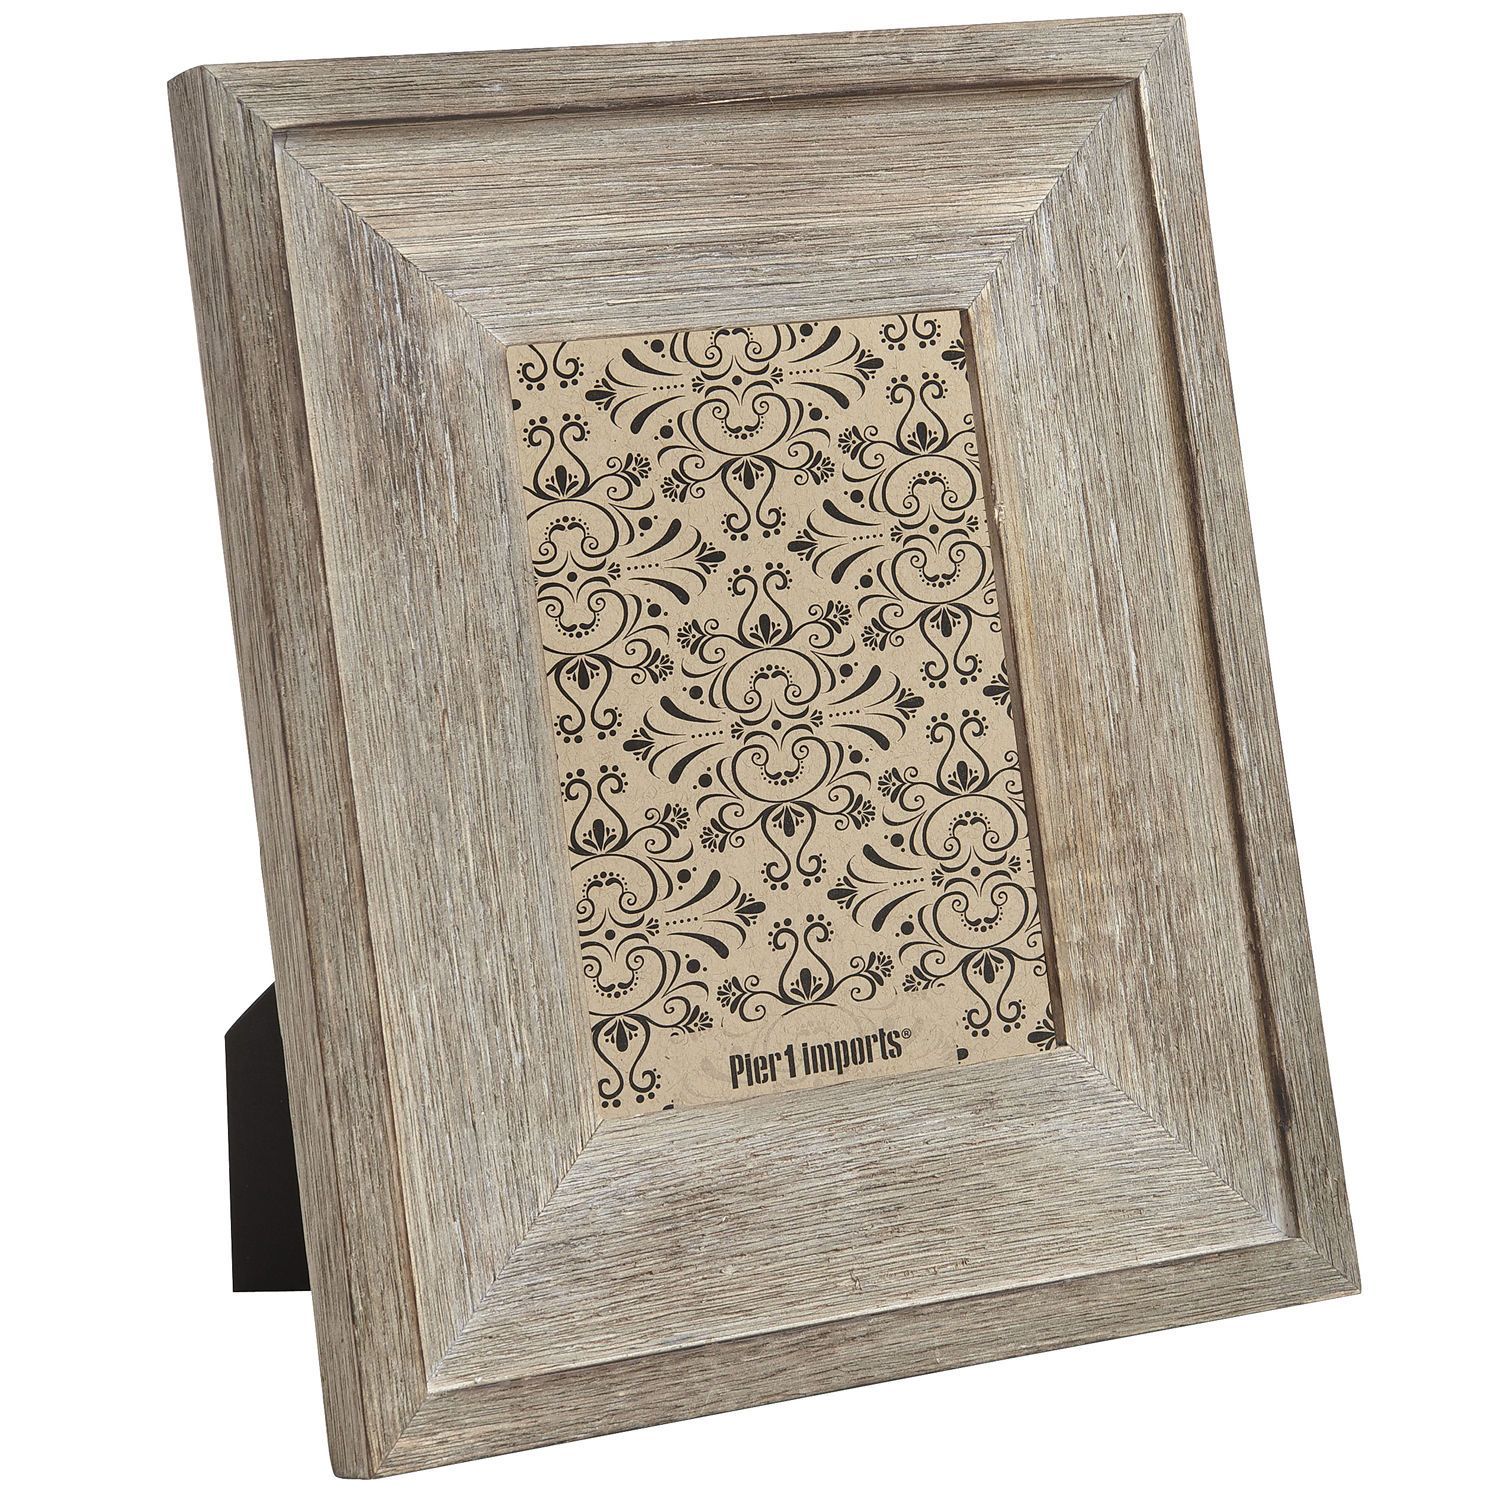 Barn Wood Smoke Frame - 5x7 | Pier 1 Imports | Apartment Wants ...